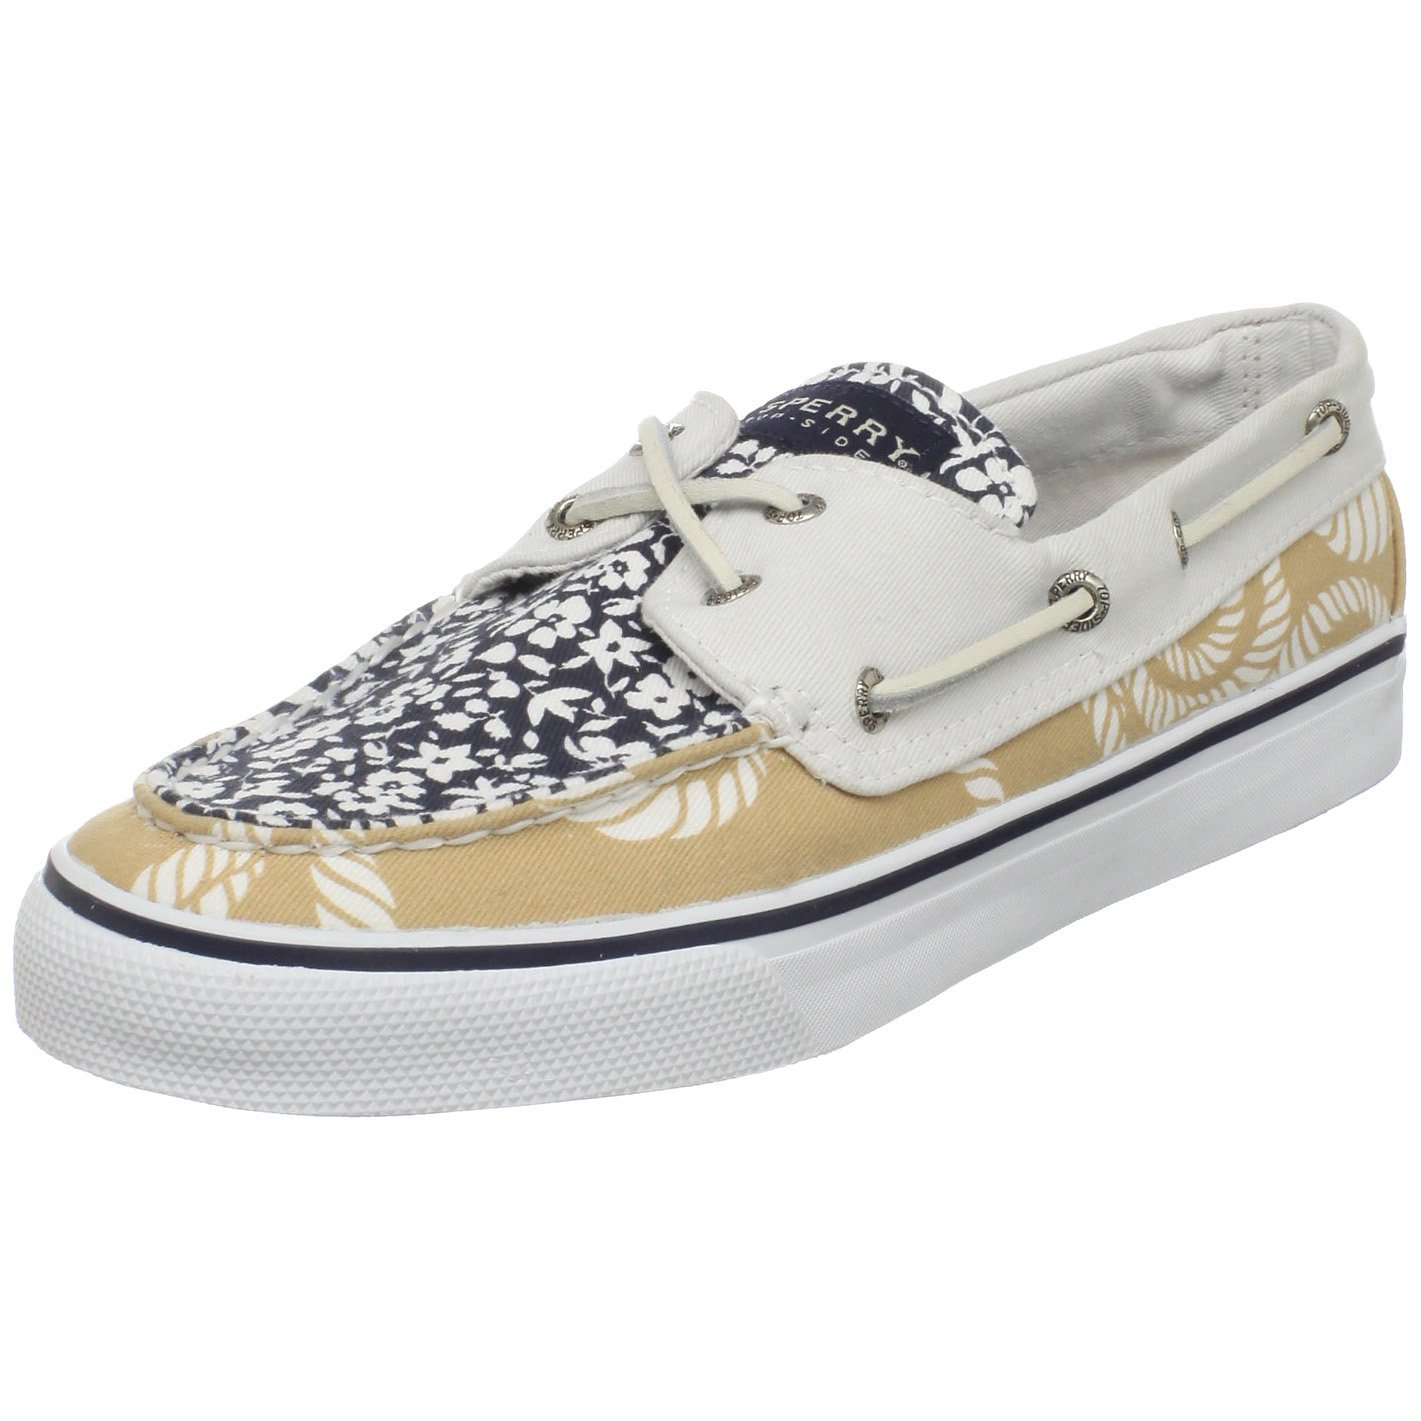 sperry top sider sperry topsider womens bahama boat shoe